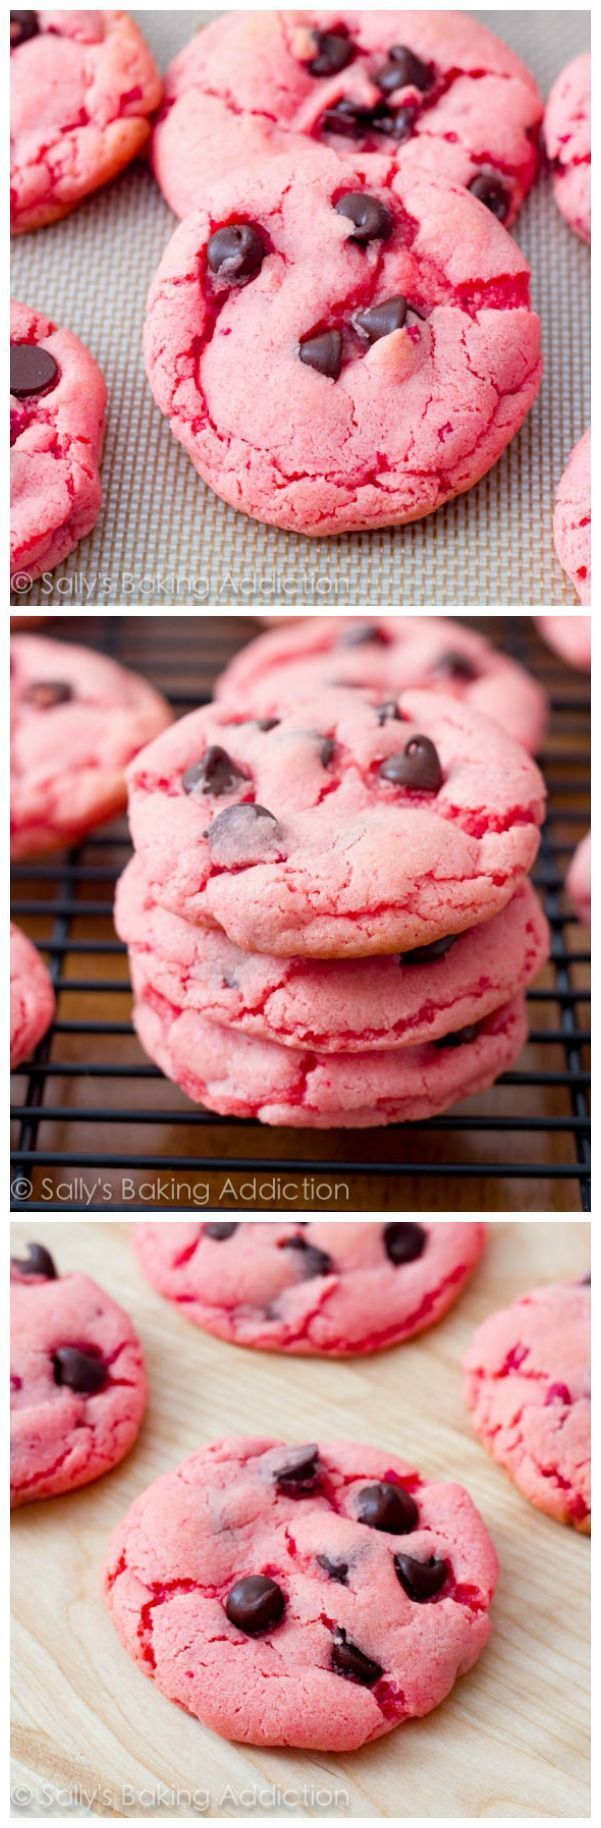 Easy, quick, and fool-proof strawberry cookies loaded with chocolate chips!